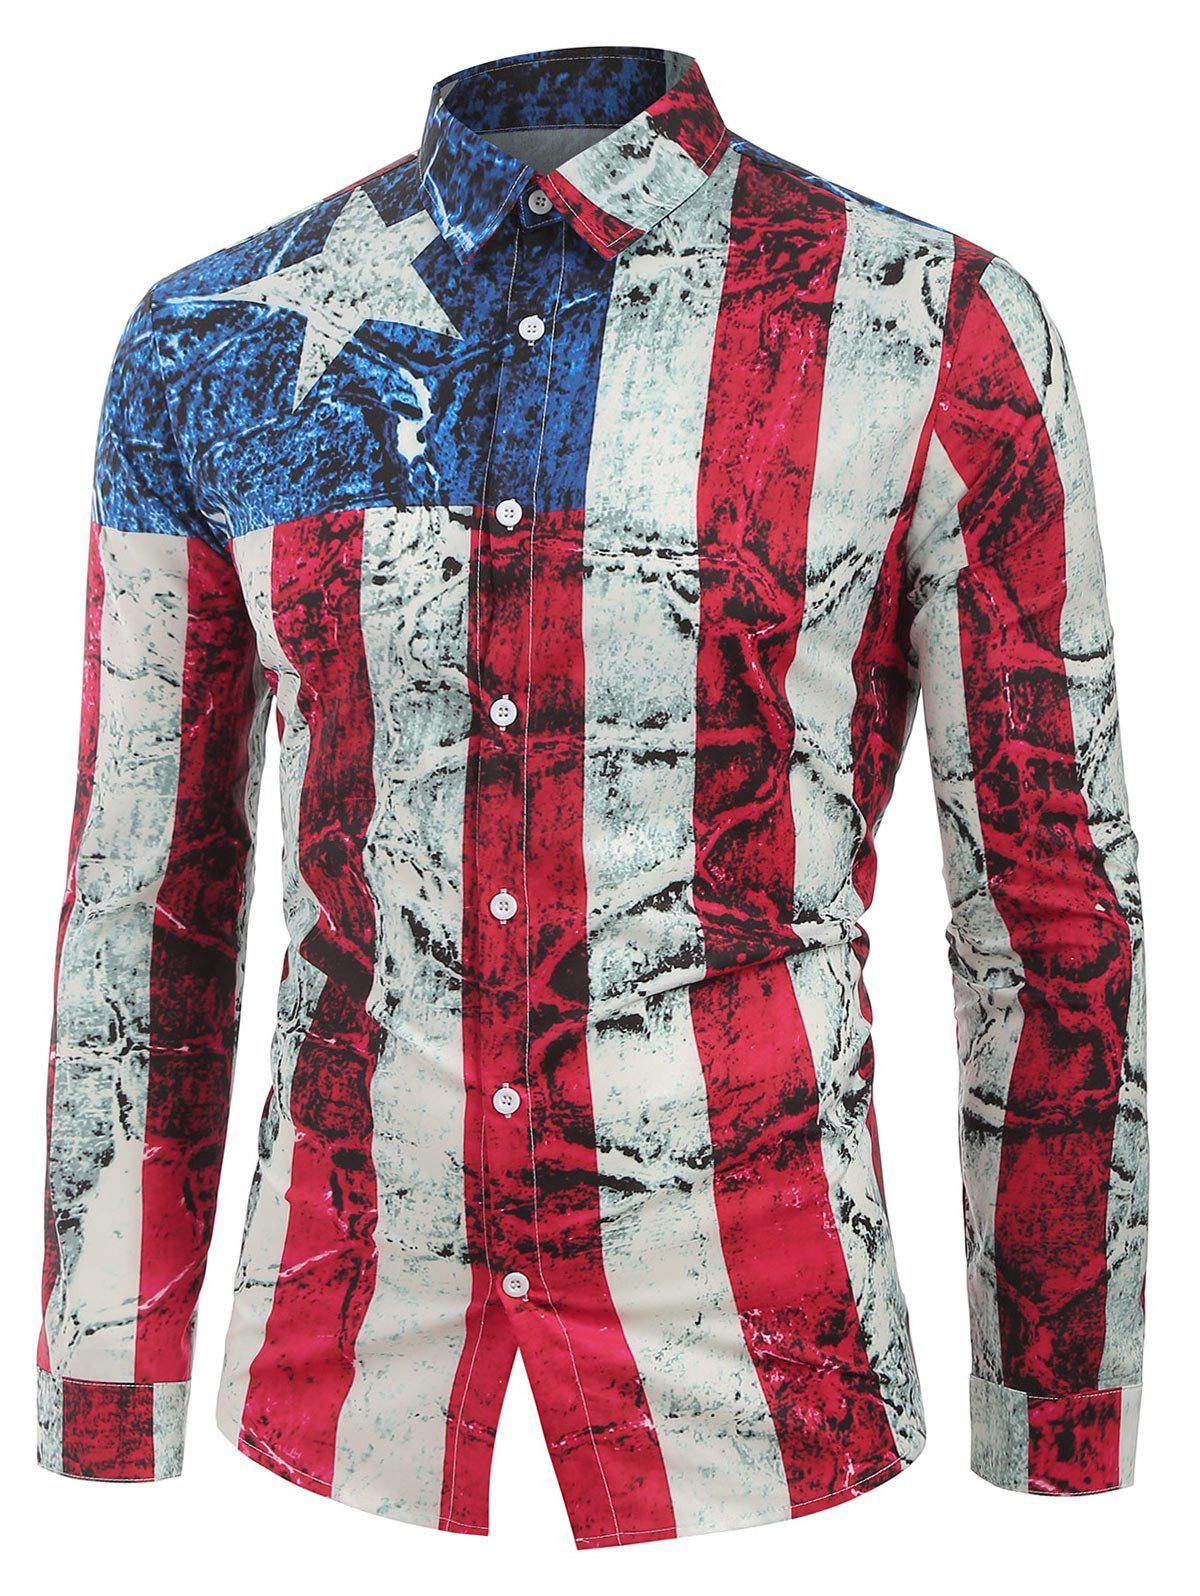 Long Sleeves Distressed American Flag Print Button Shirt - multicolor 2XL